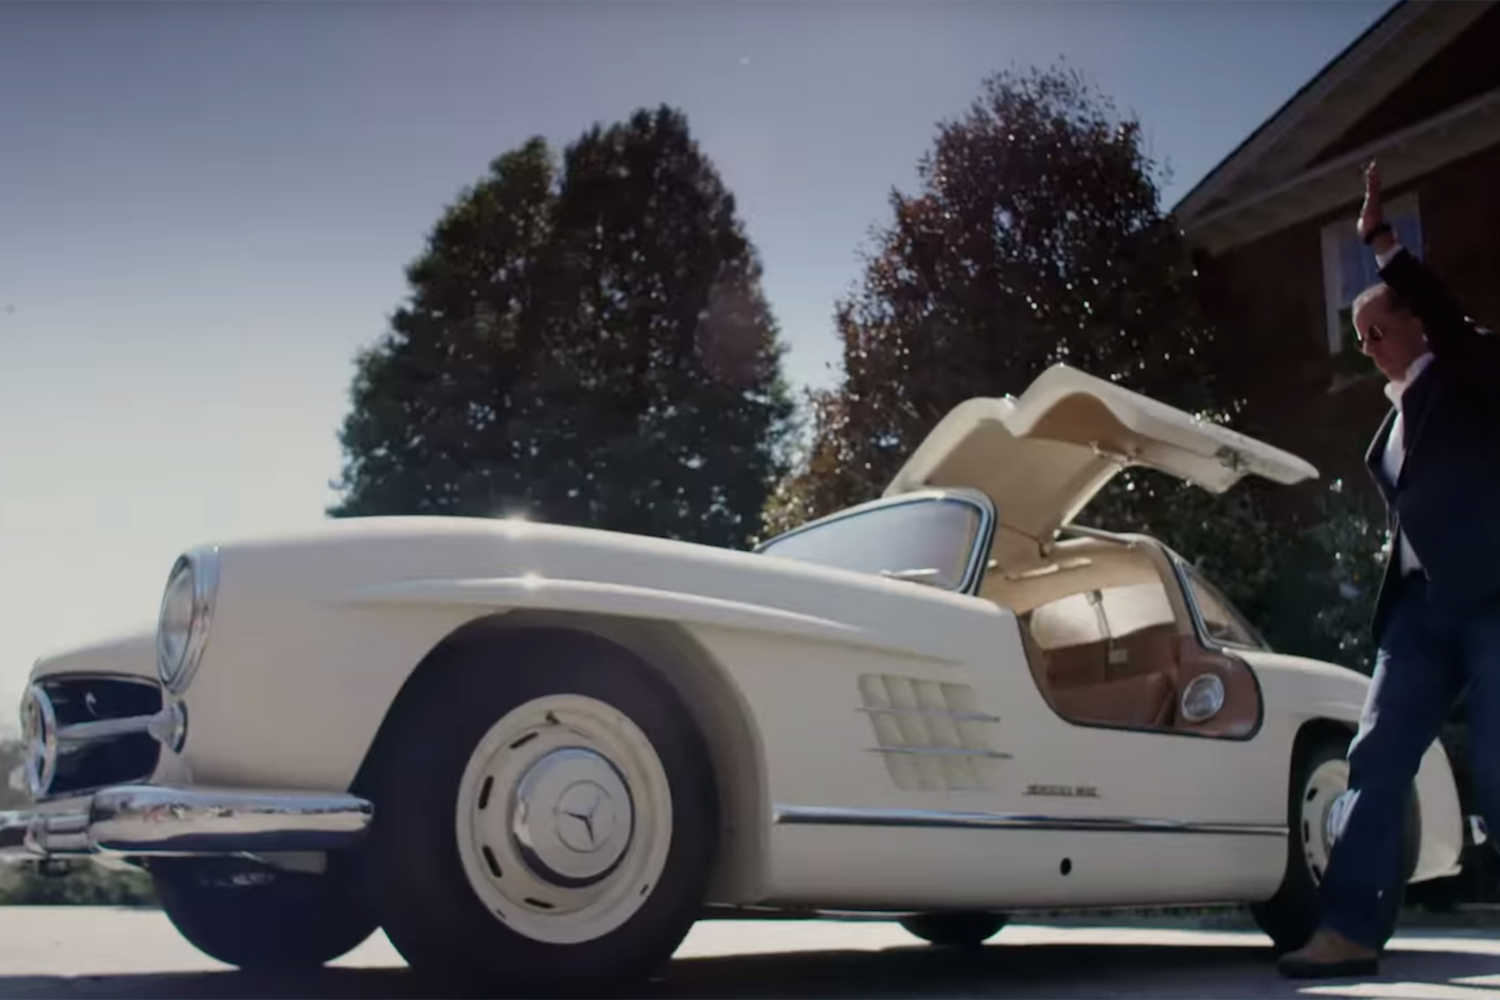 Best Comedians in Cars 1955 Mercedes-Benz 300 SL Gullwing Jerry Seinfeld